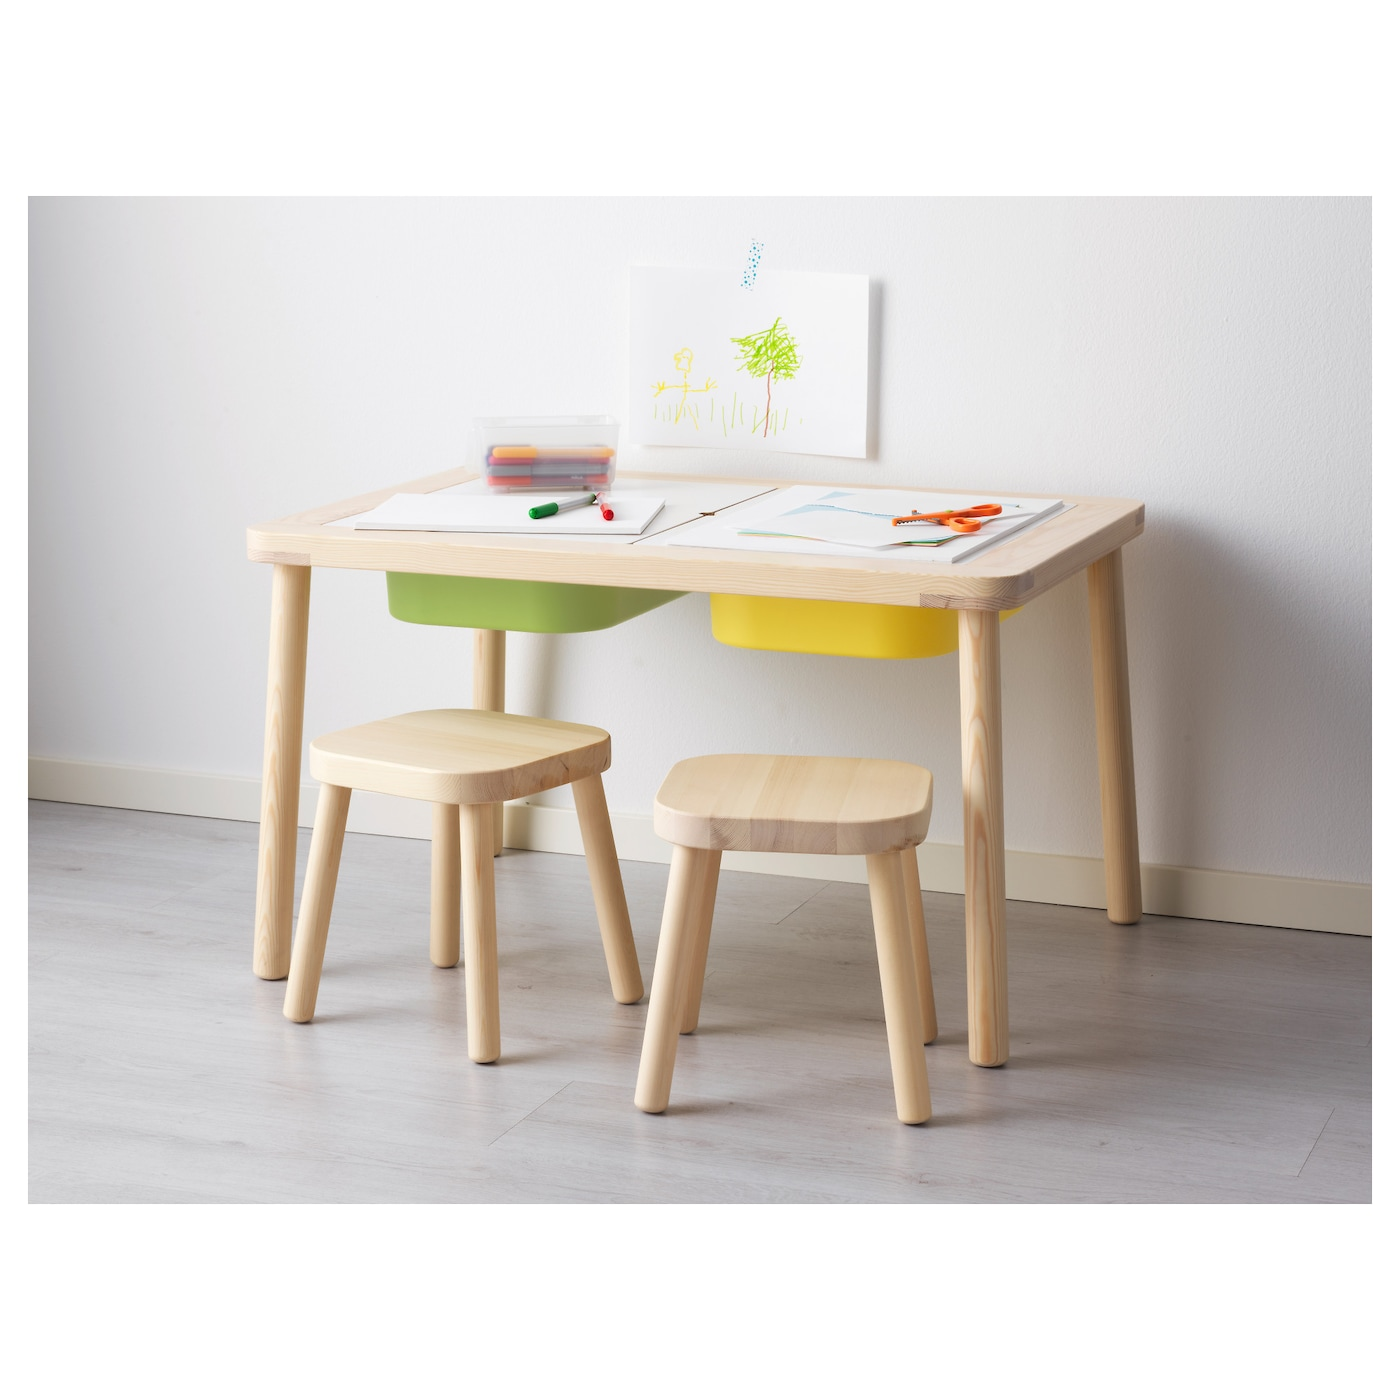 Flisat children 39 s table 83x58 cm ikea - Tavolini per bambini ikea ...